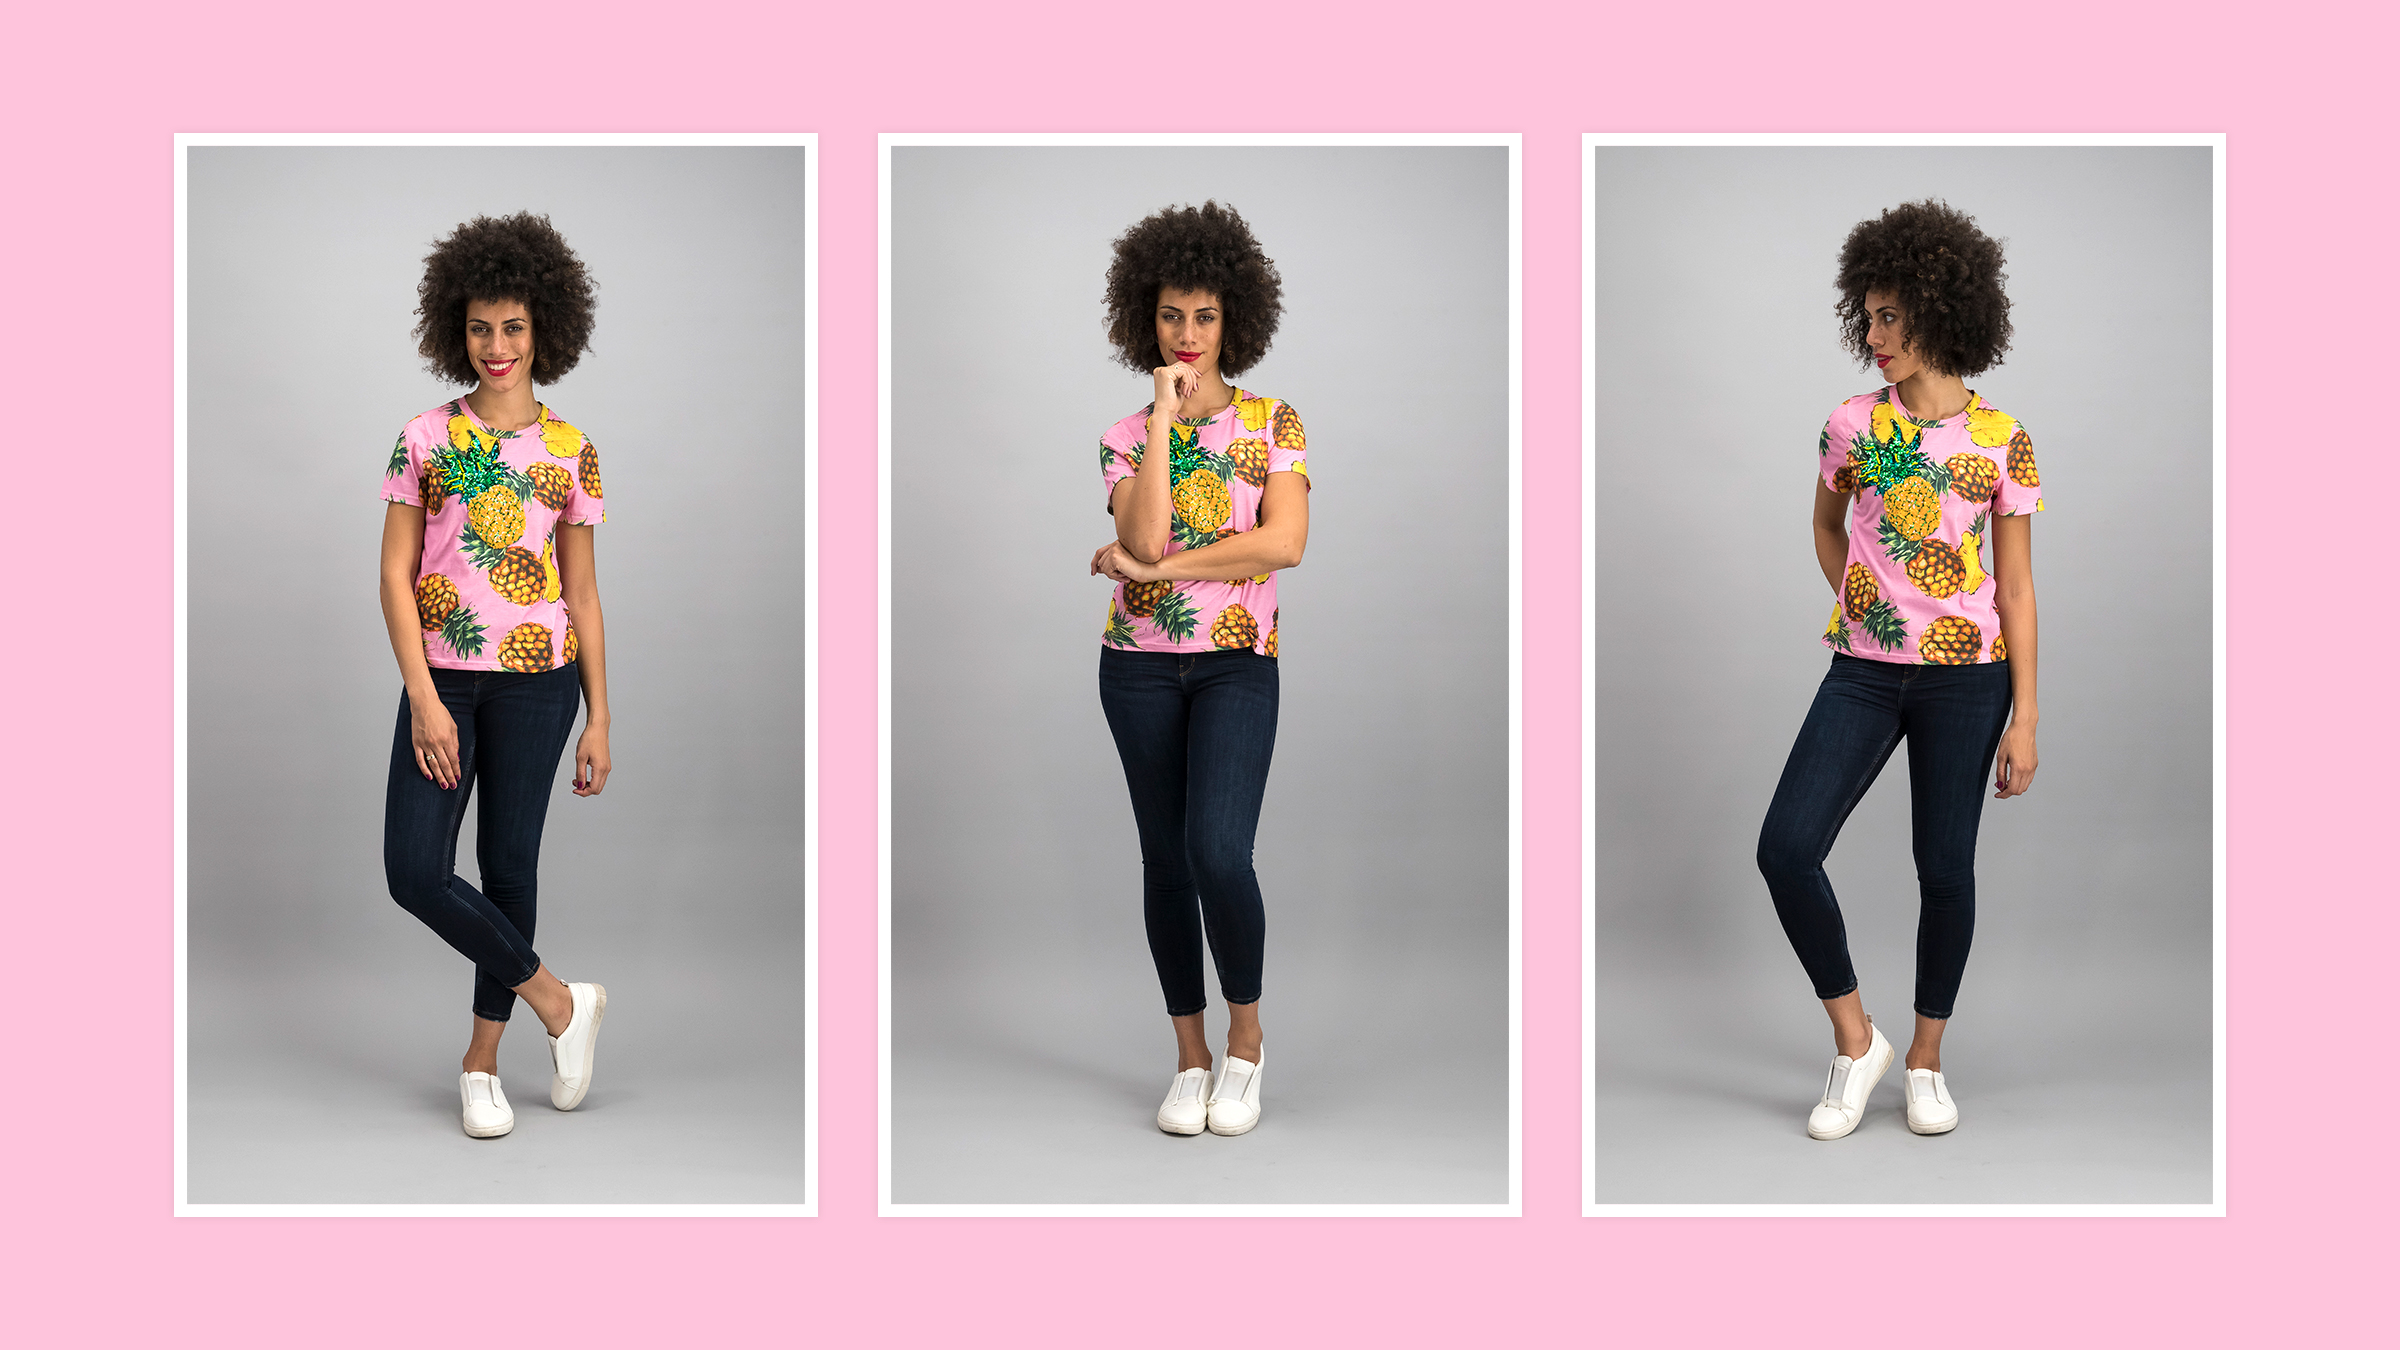 The T-shirt you're showcasing should be complemented by casual,comfortable clothing and footwear.